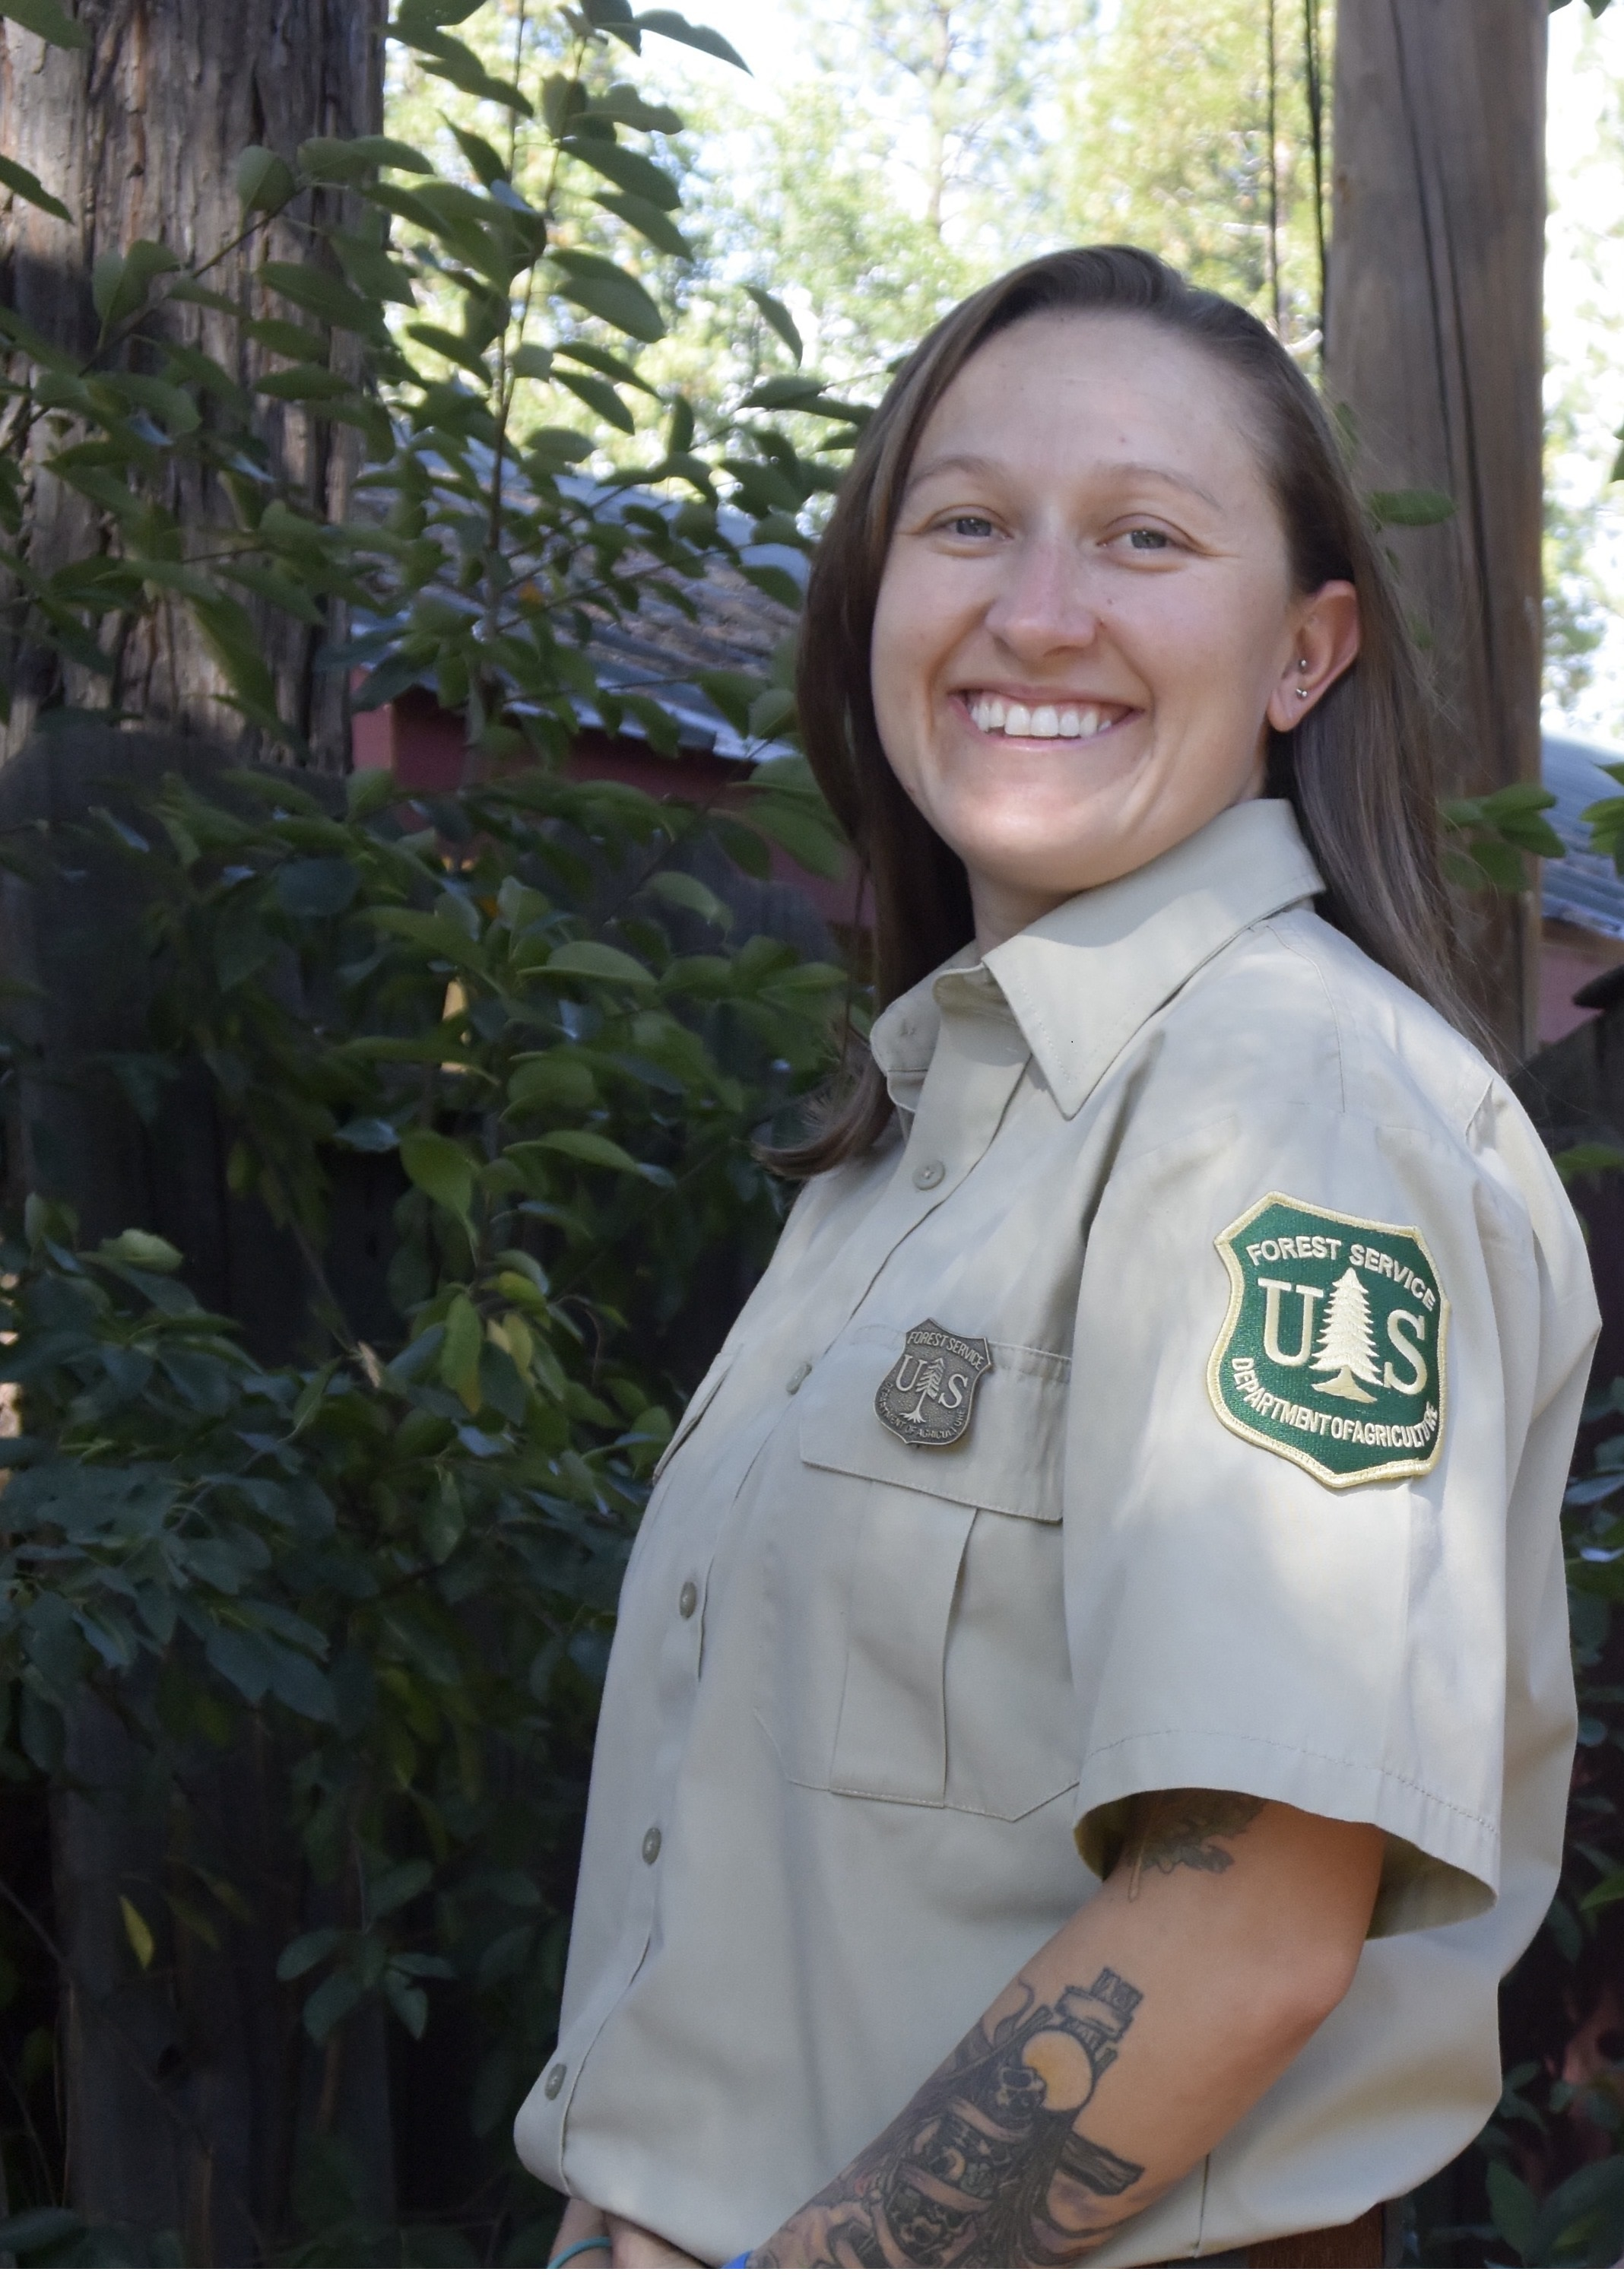 A photo of Sara Billings wearing her Forest Service uniform